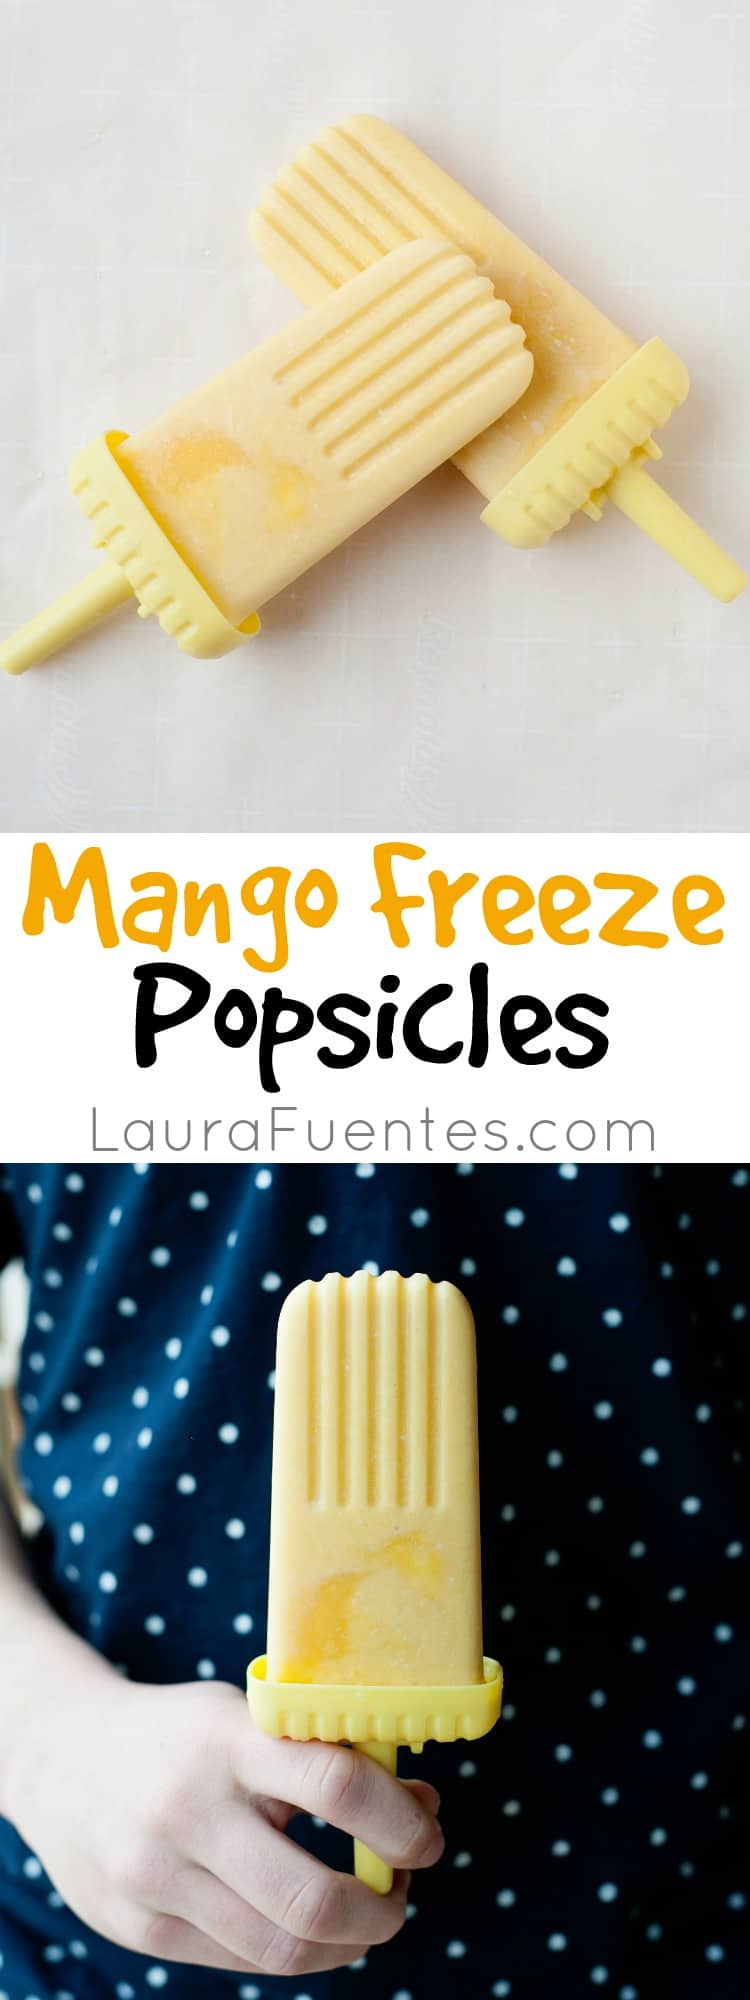 Mango Freeze Popsicles: Bring the flavors of the New Orleans Jazz Fest to your kids snack time with this easy recipe!